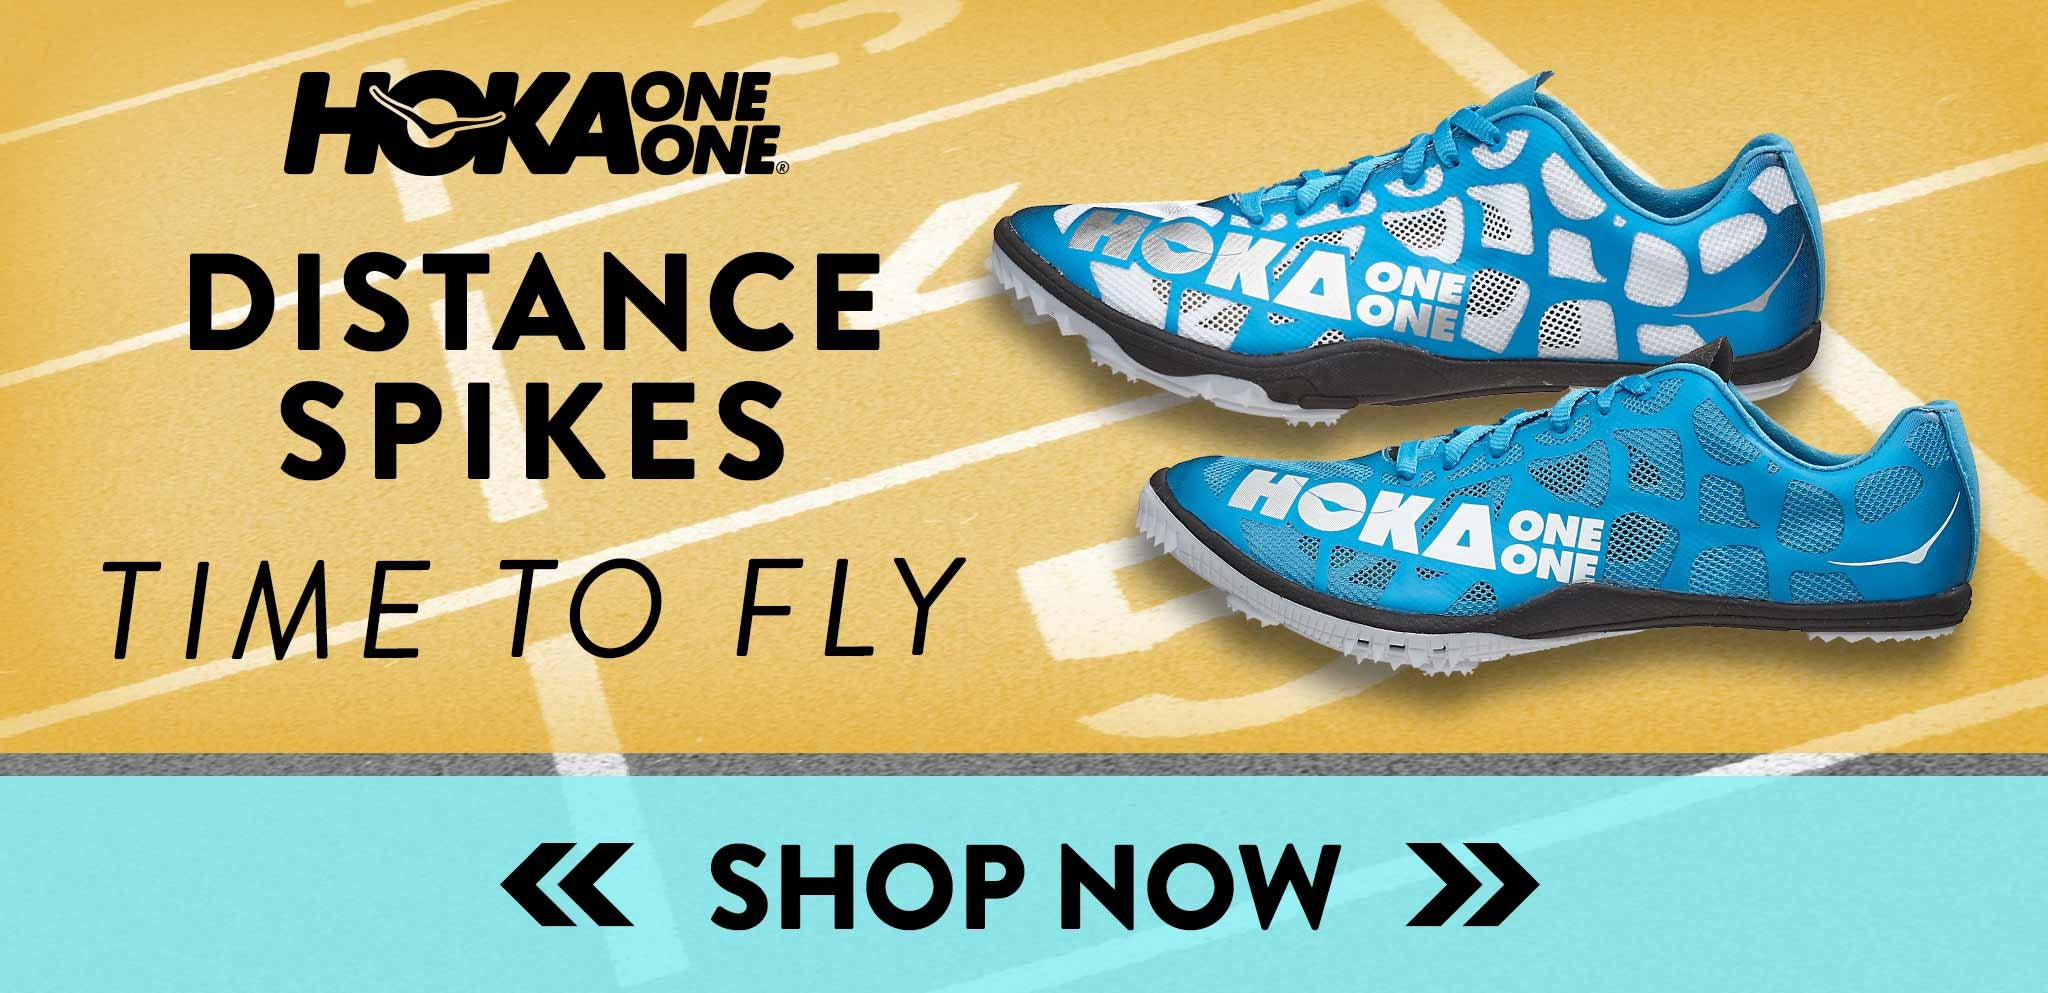 f600c03321fba8 Hoka One One Men s Competition Shoes ...